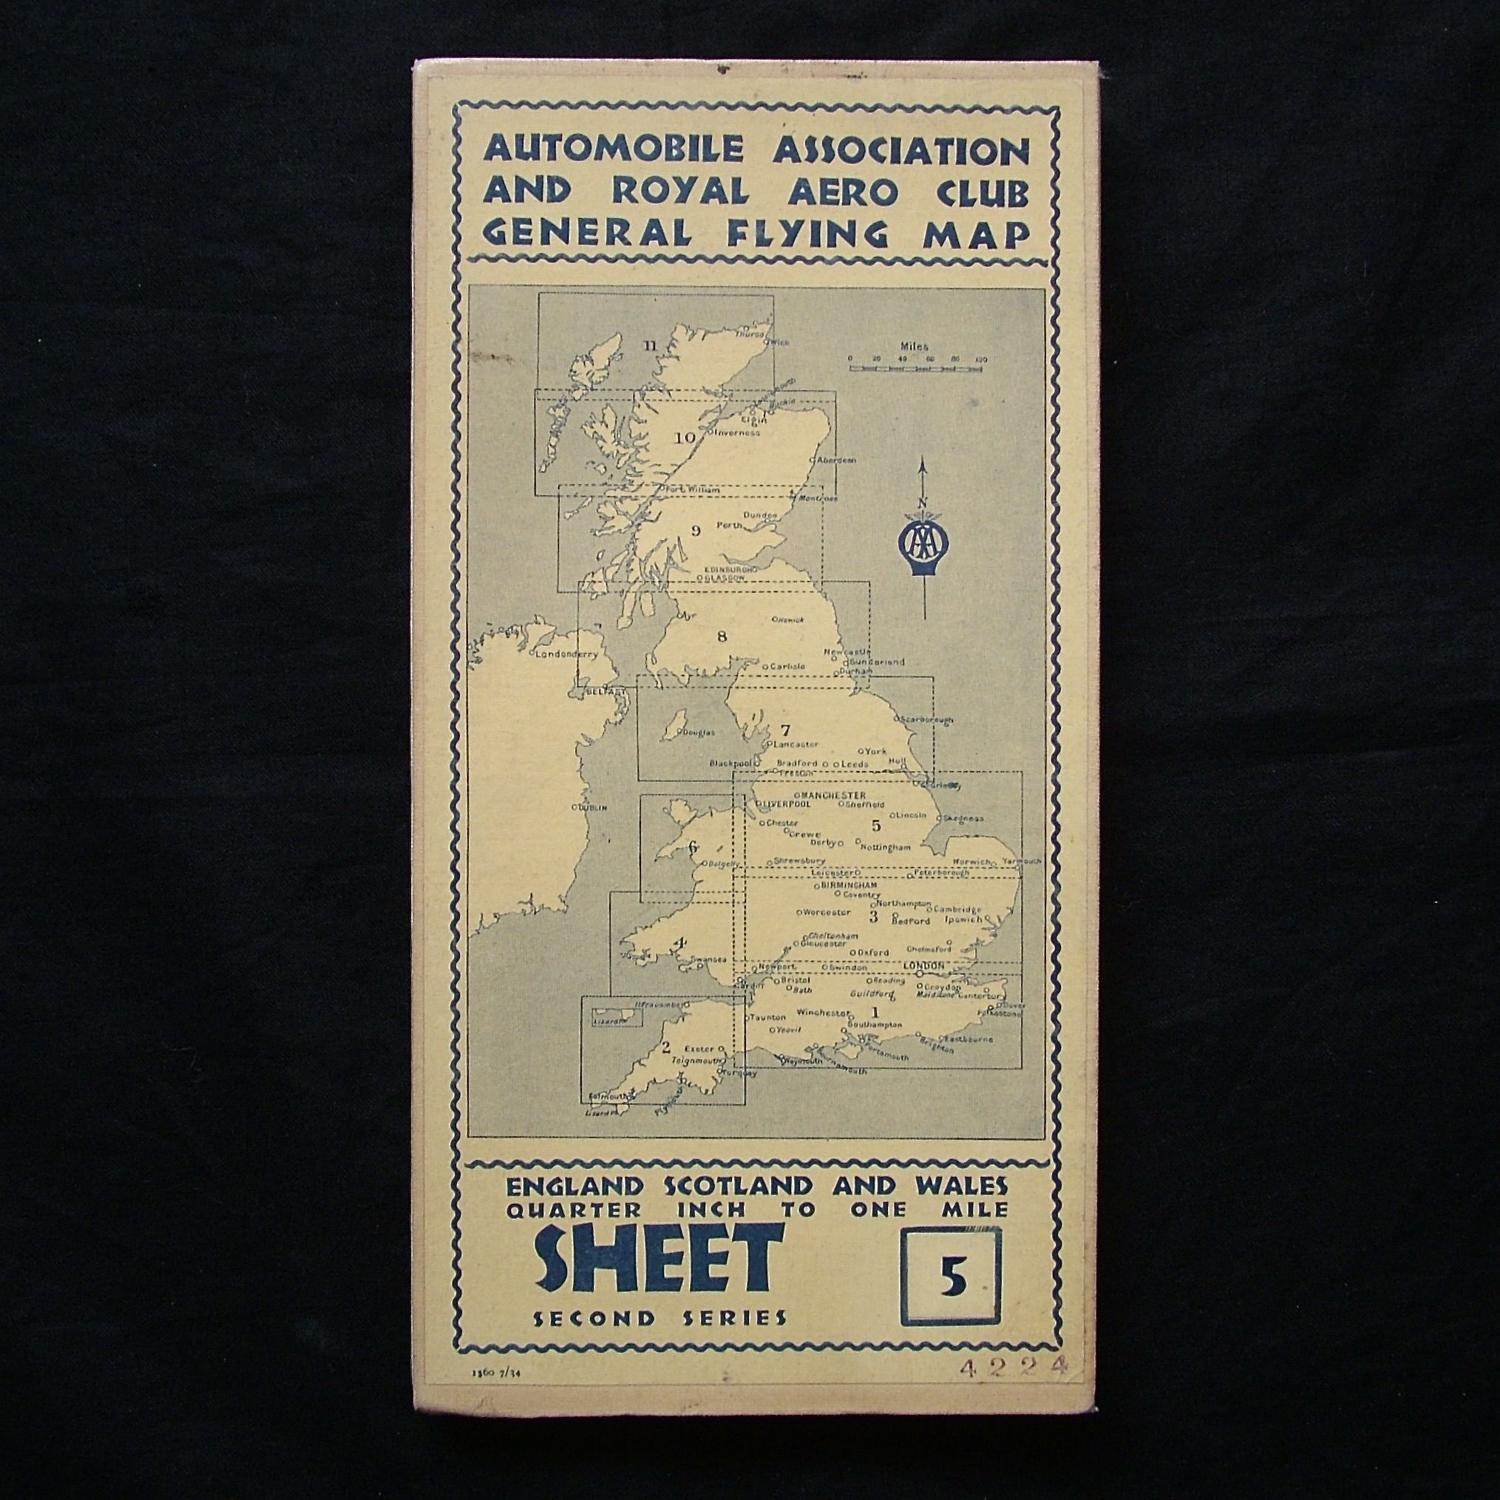 Pre WW2 AA & Royal Aero Club flying map - sheet 5